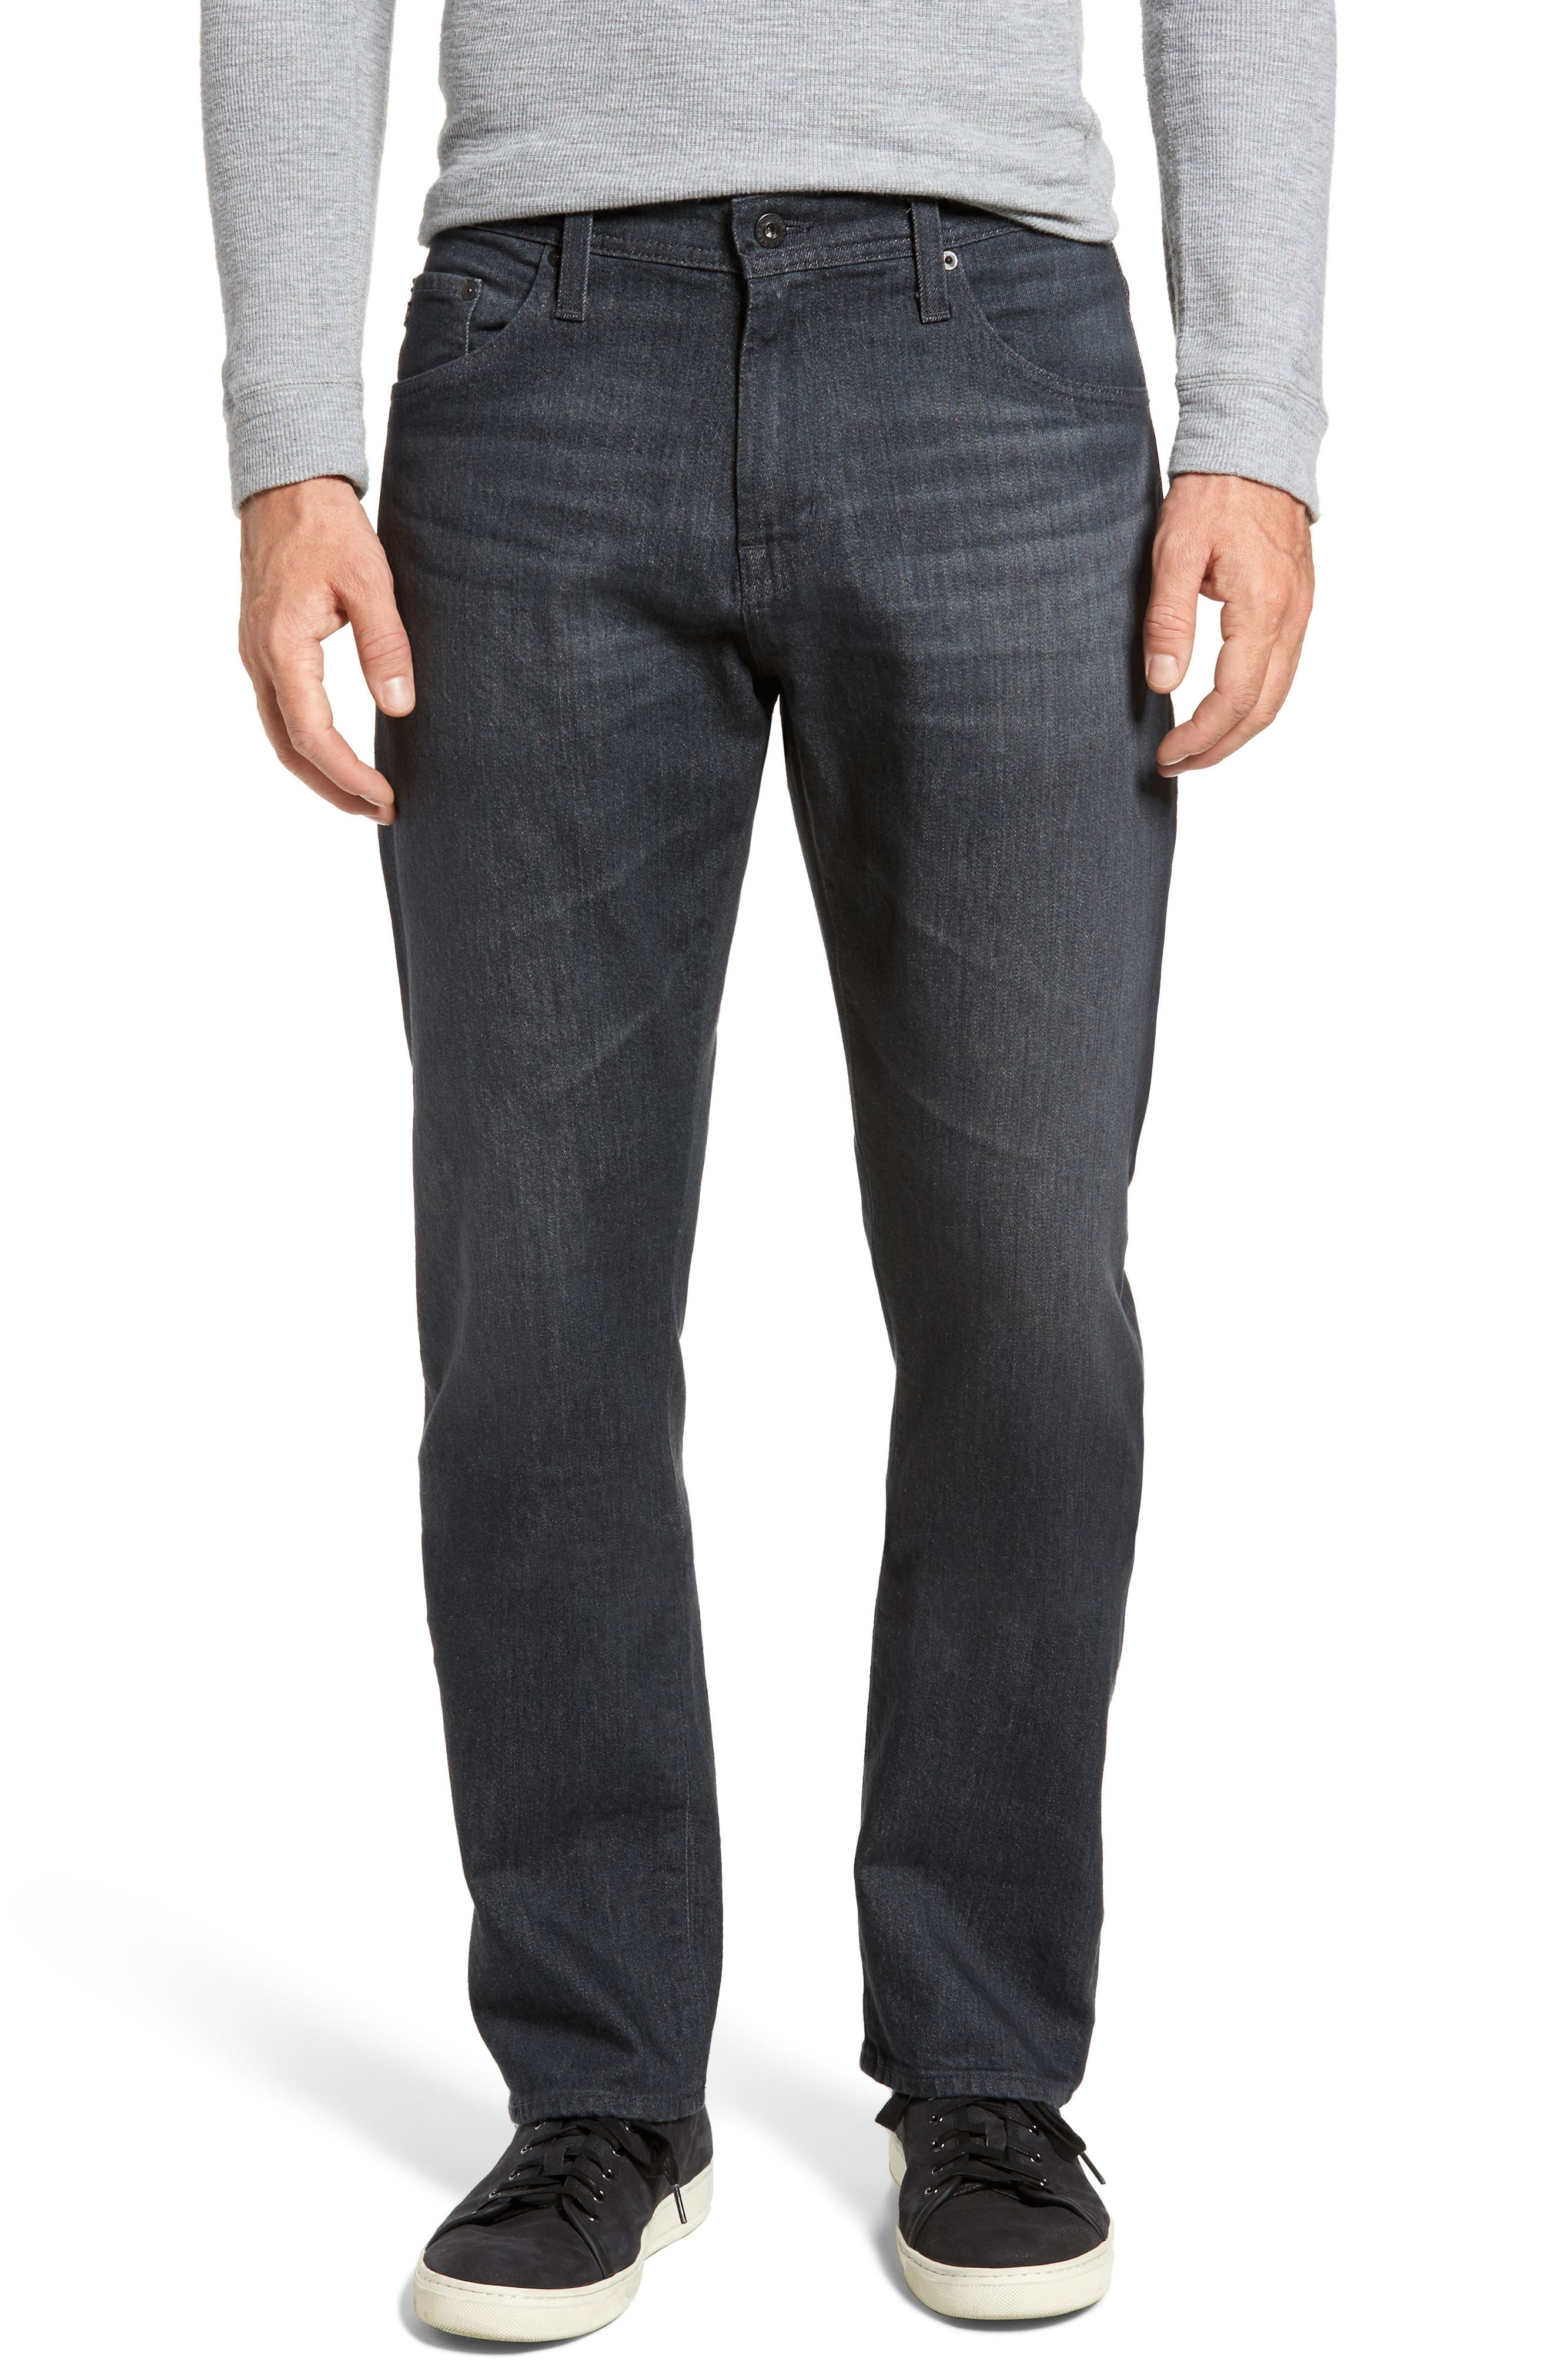 Ives Straight Fit Jeans,                         Main,                         color, 015